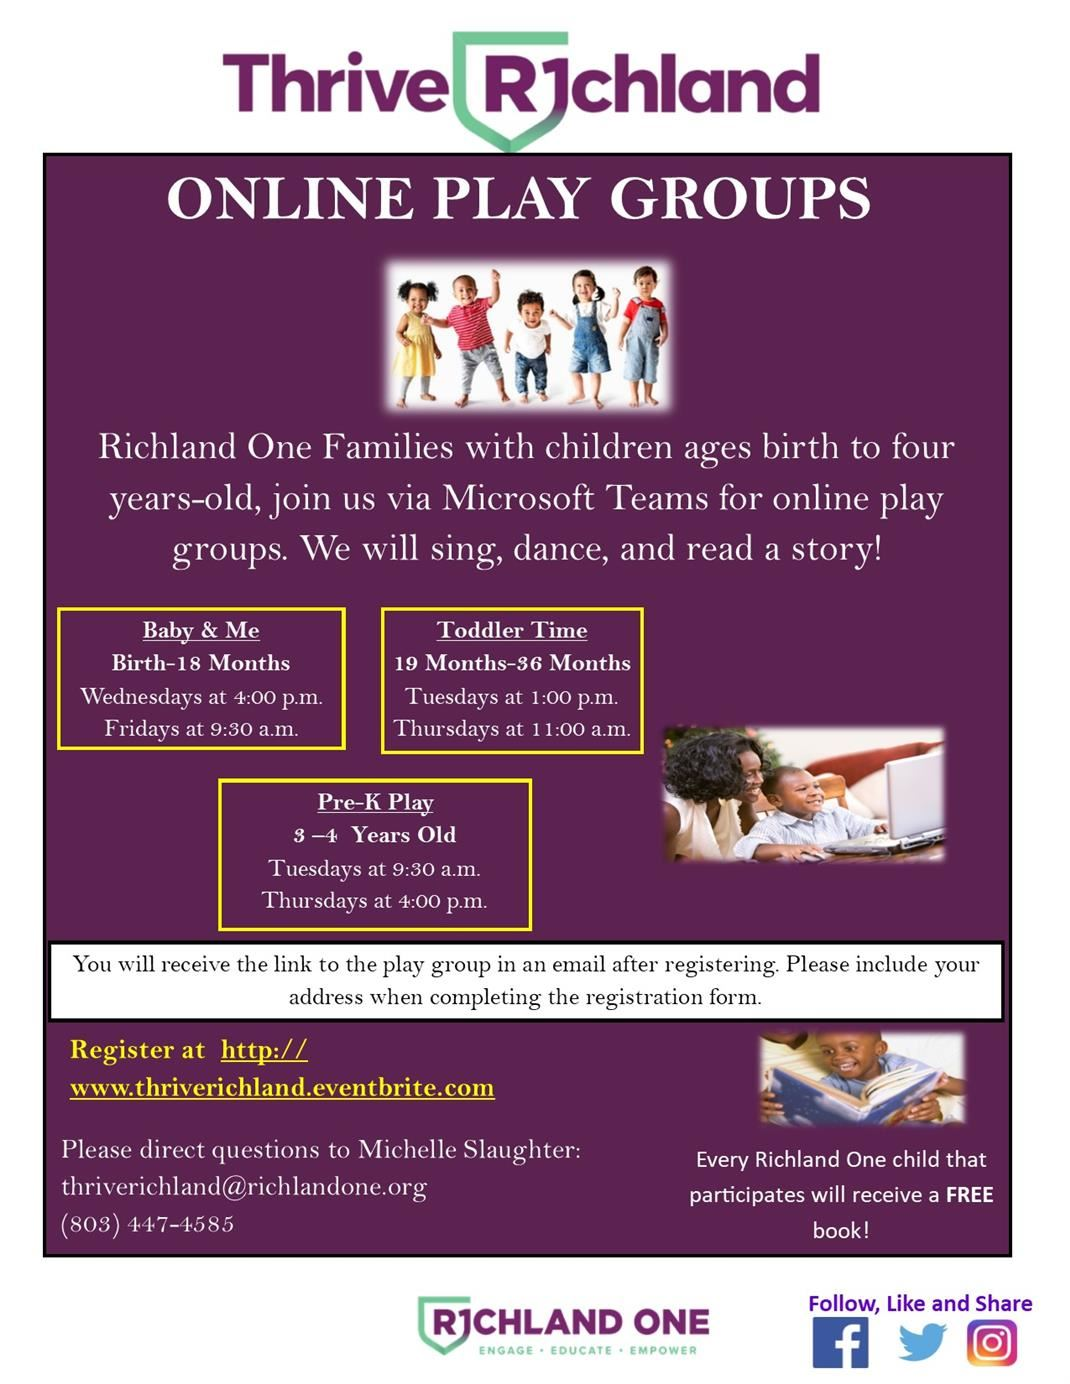 On-line Playgroup Flyer